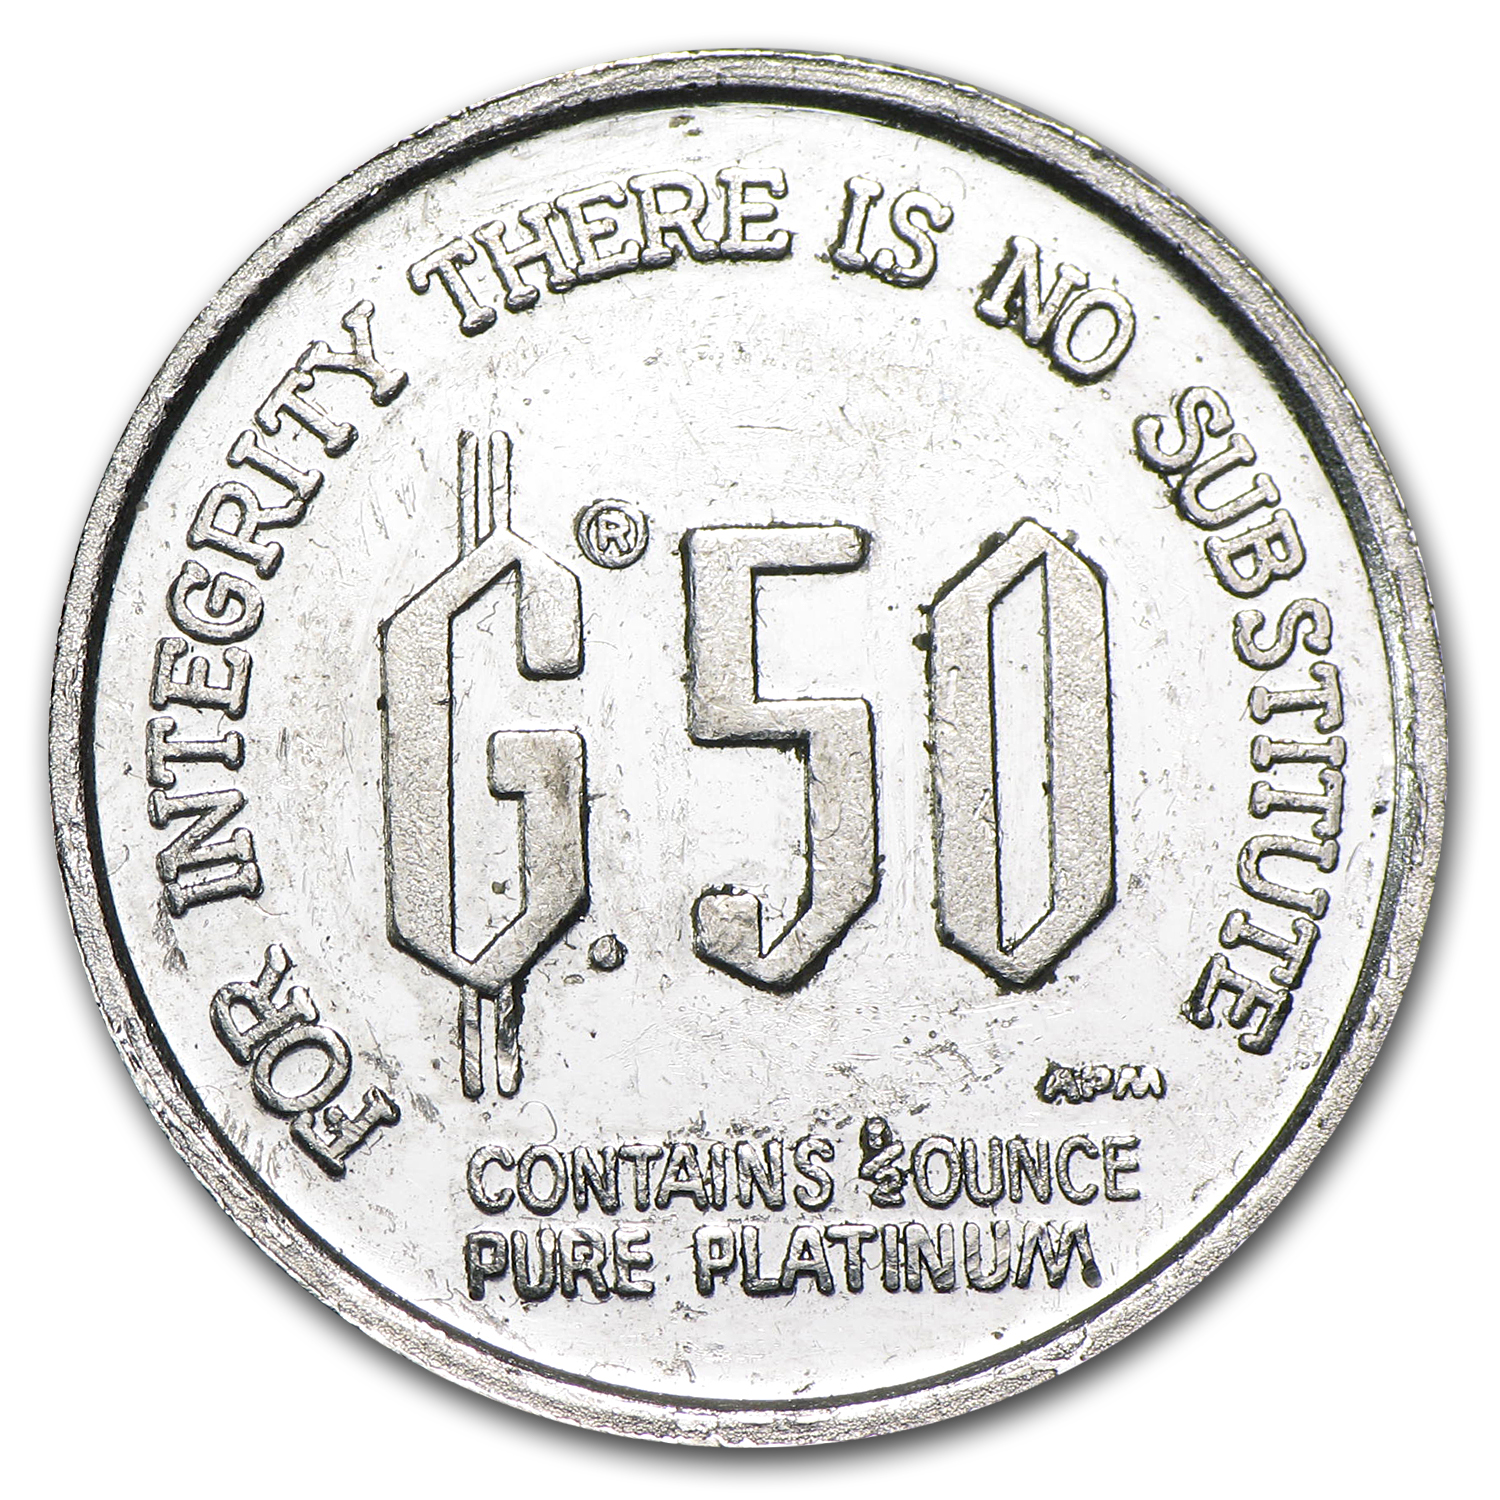 1/2 oz Platinum Freidrich Hayek Denationalization of Money